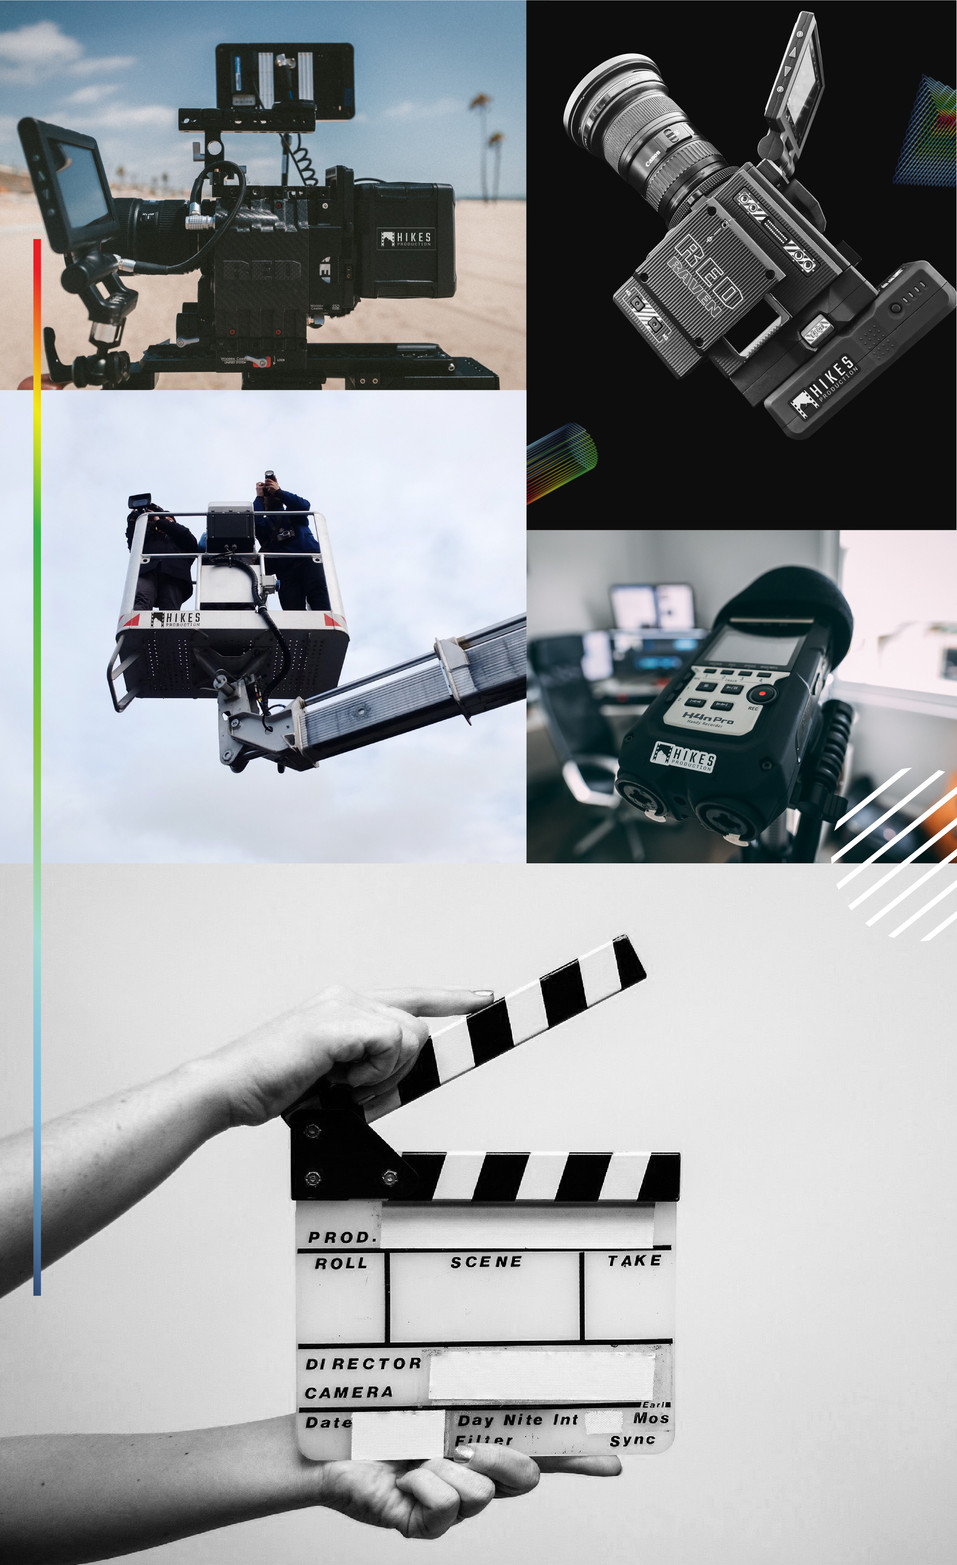 Hikes Production Equipment Branding